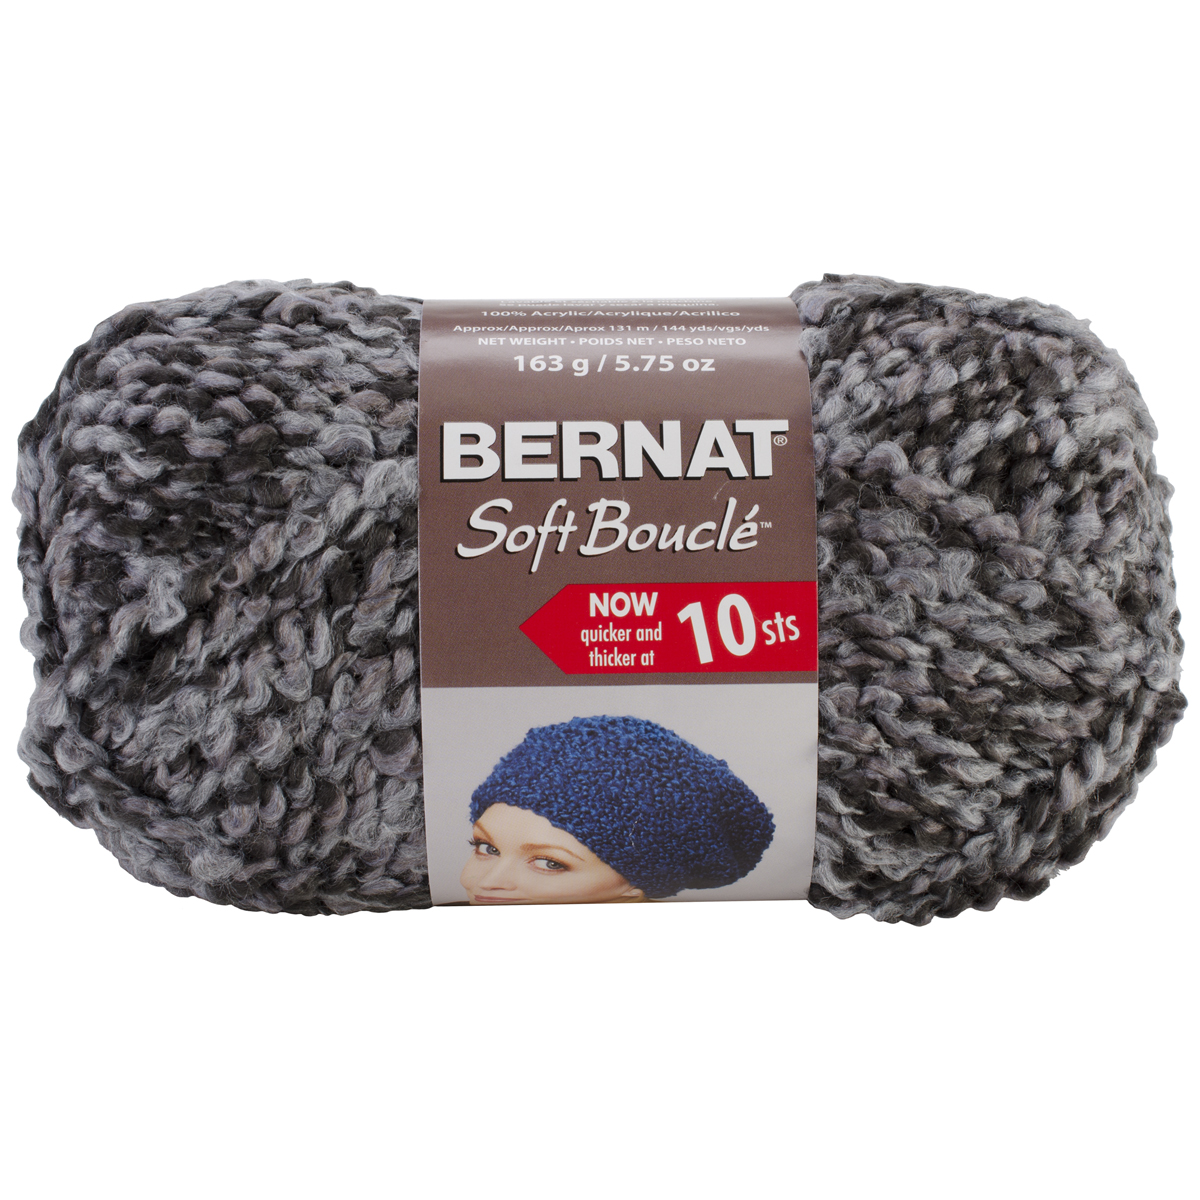 Boucle Yarn : ... Soft Boucle Yarn ? Bernat Soft Boucle Yarn Super Bulky Grey Shades